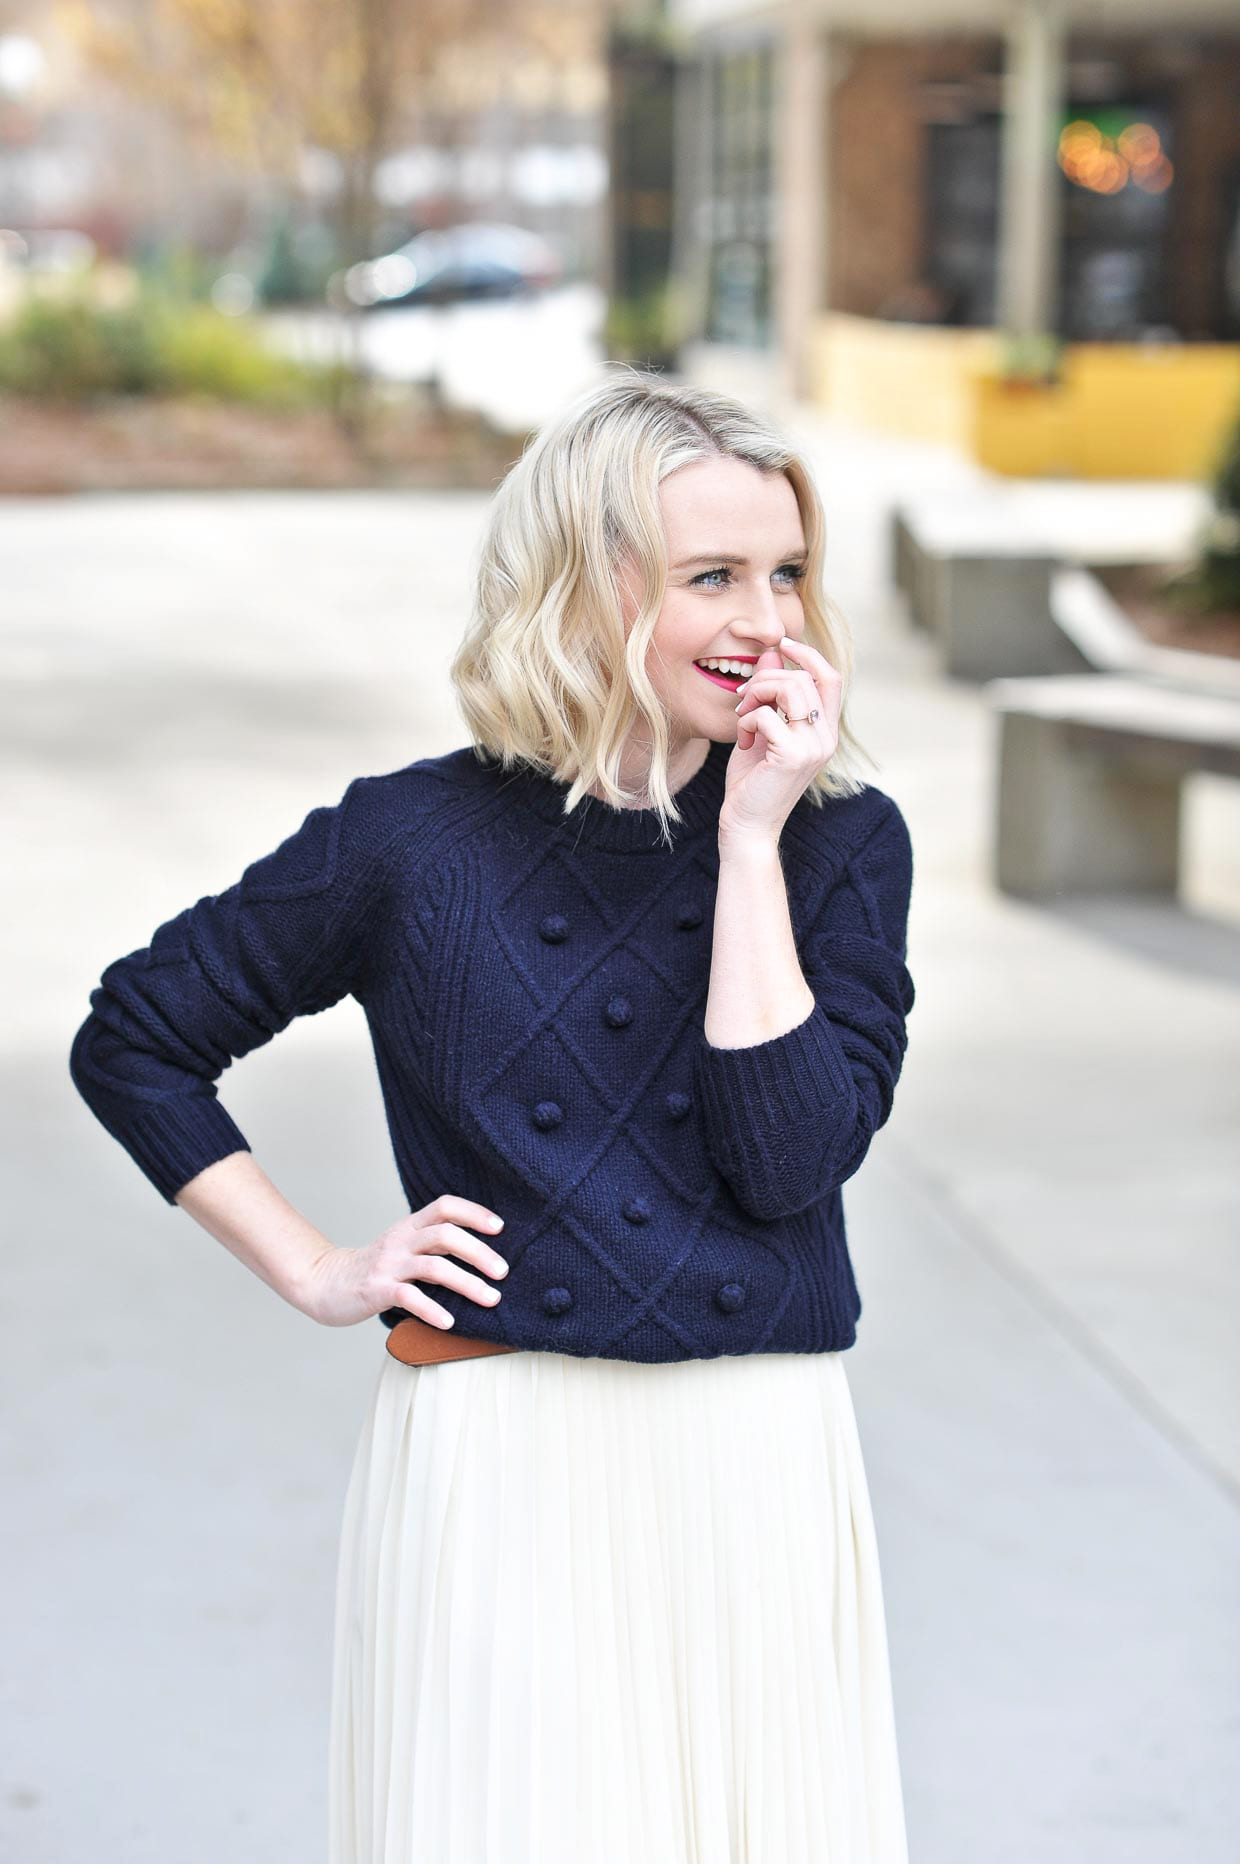 c21b6ba2002 How To Style A Navy Sweater Over A Dress - Poor Little It Girl